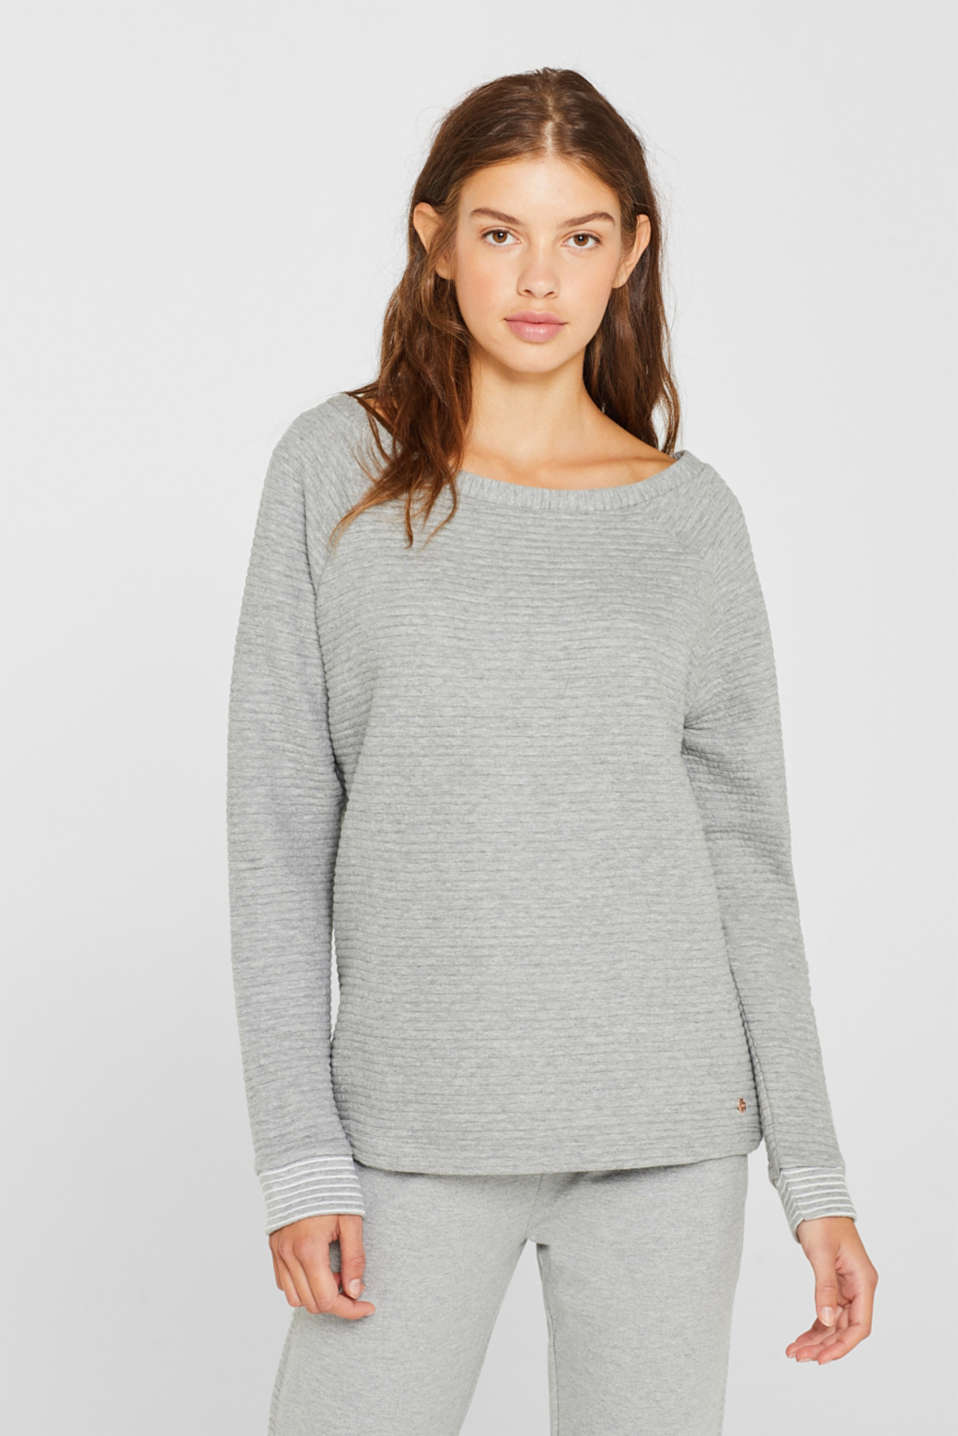 Sweatshirt with a distinctive ribbed texture, MEDIUM GREY, detail image number 1